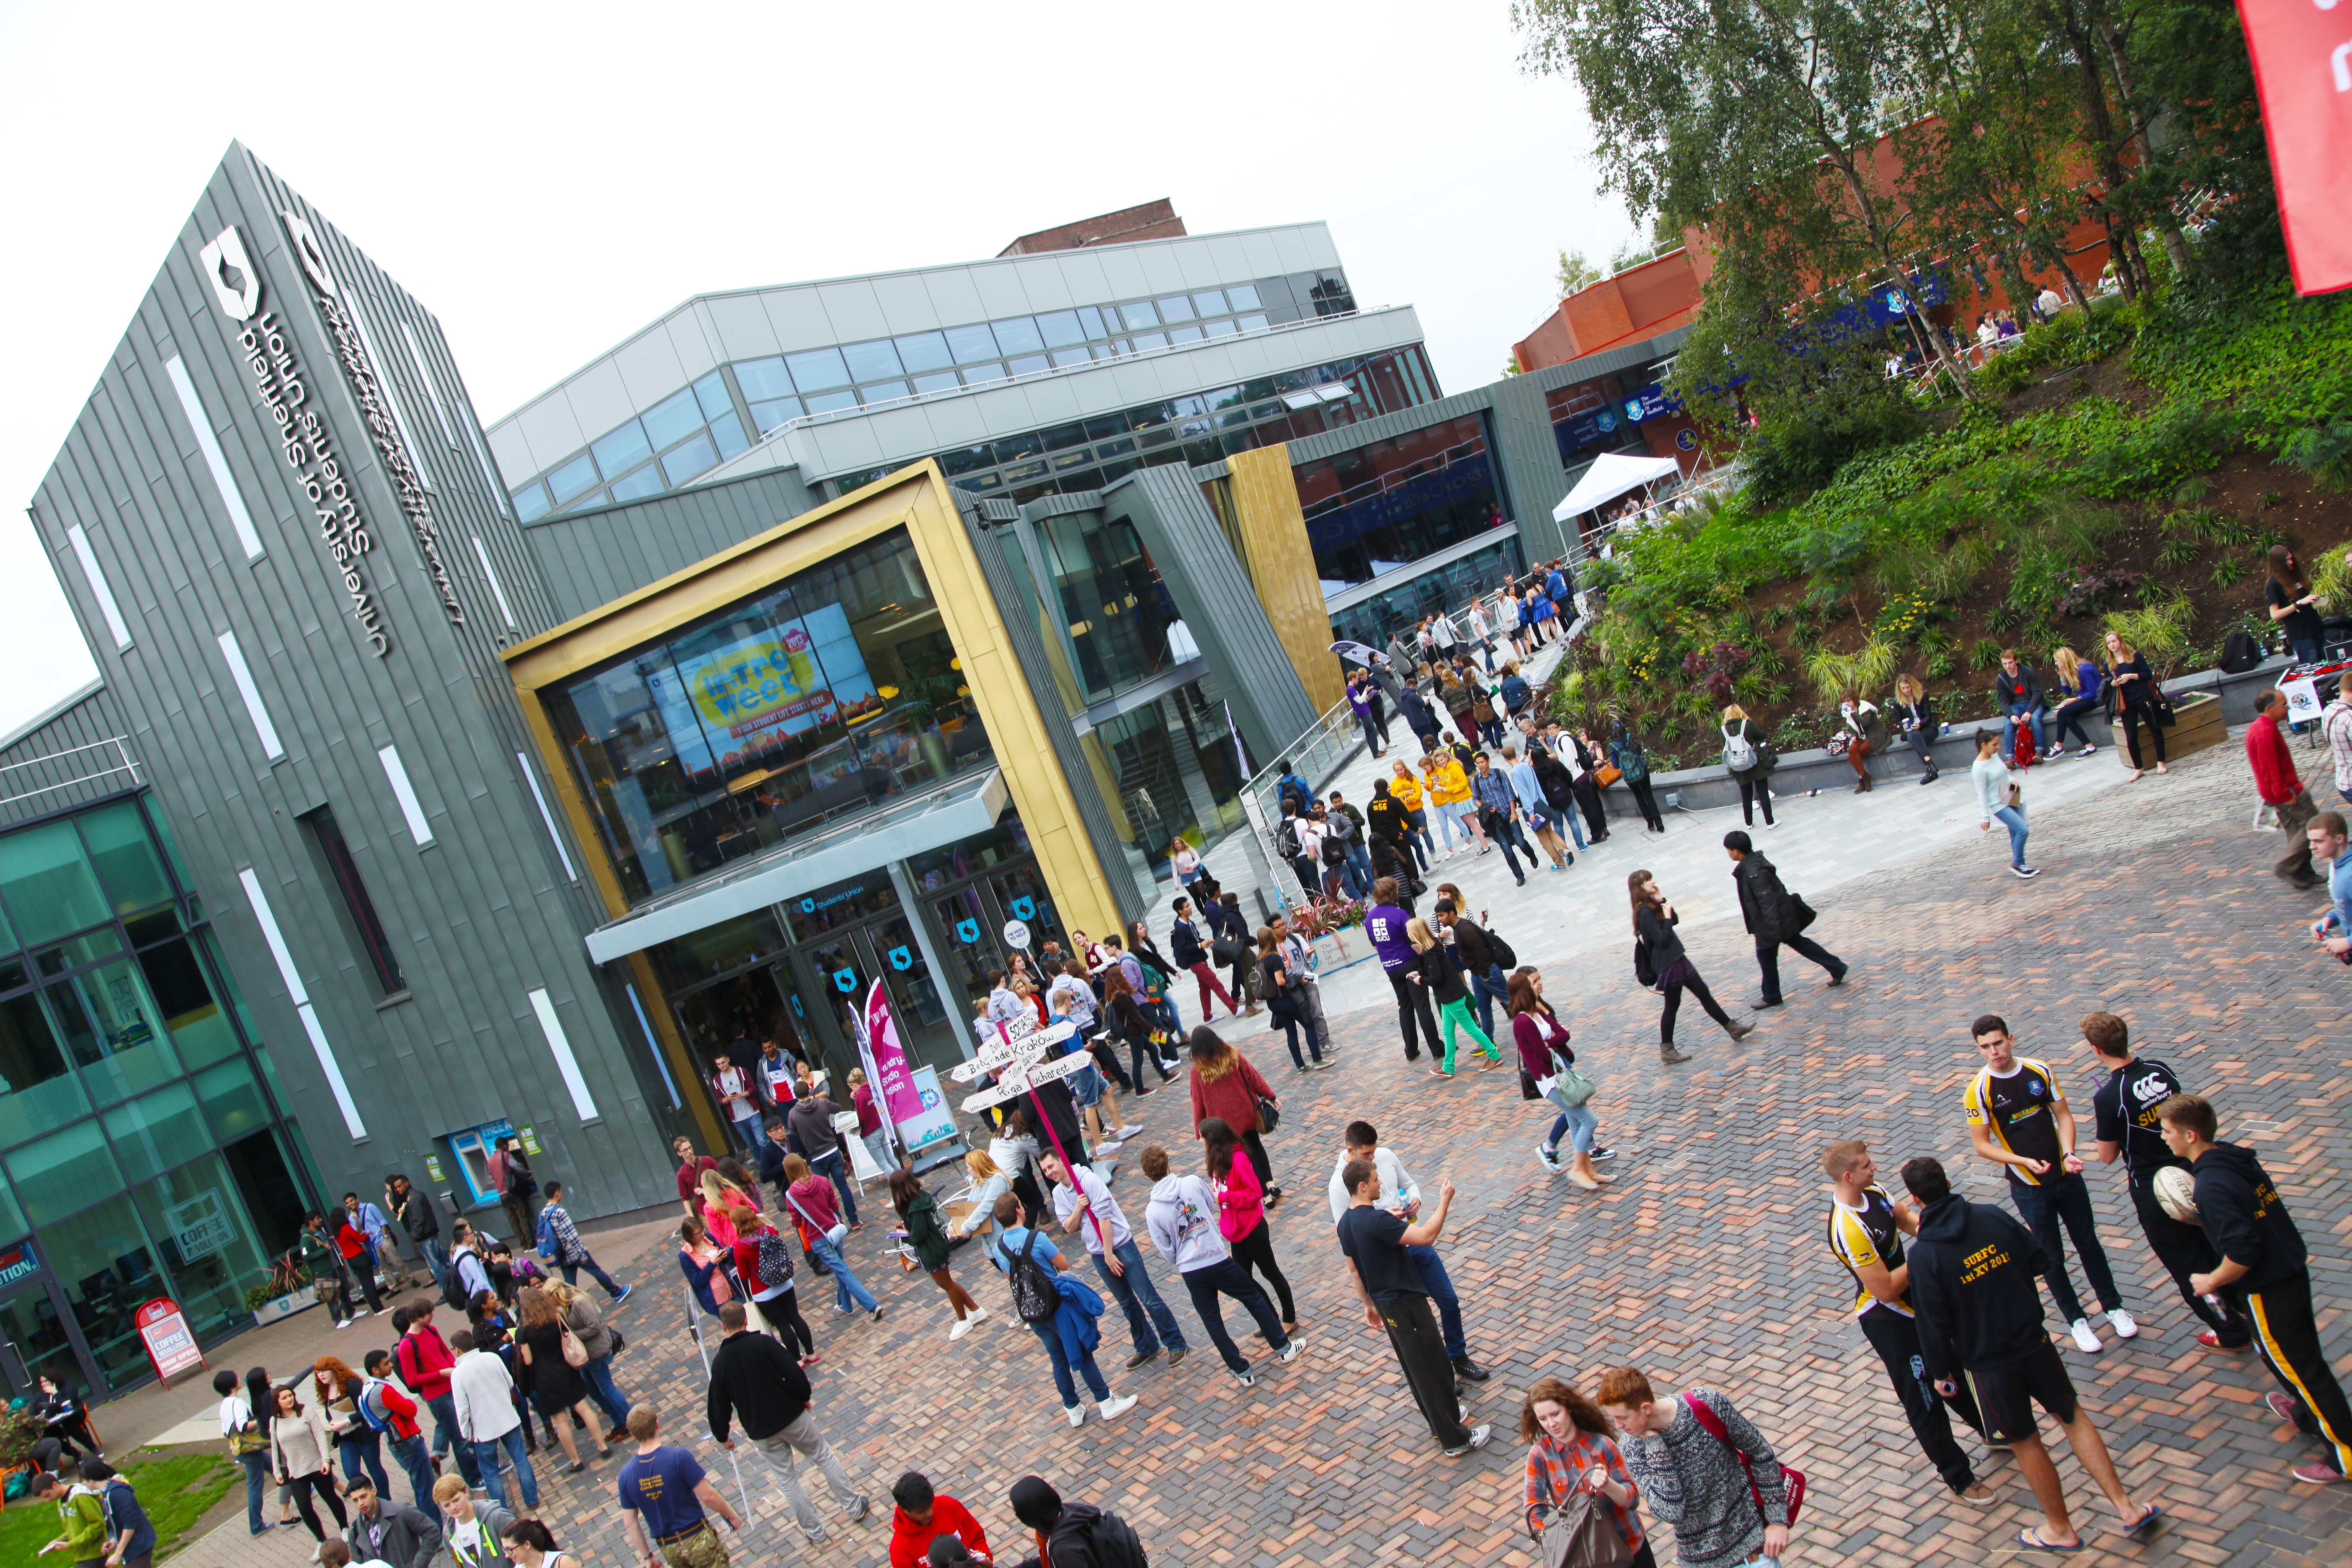 Sheffield_Students'_Union_Concourse